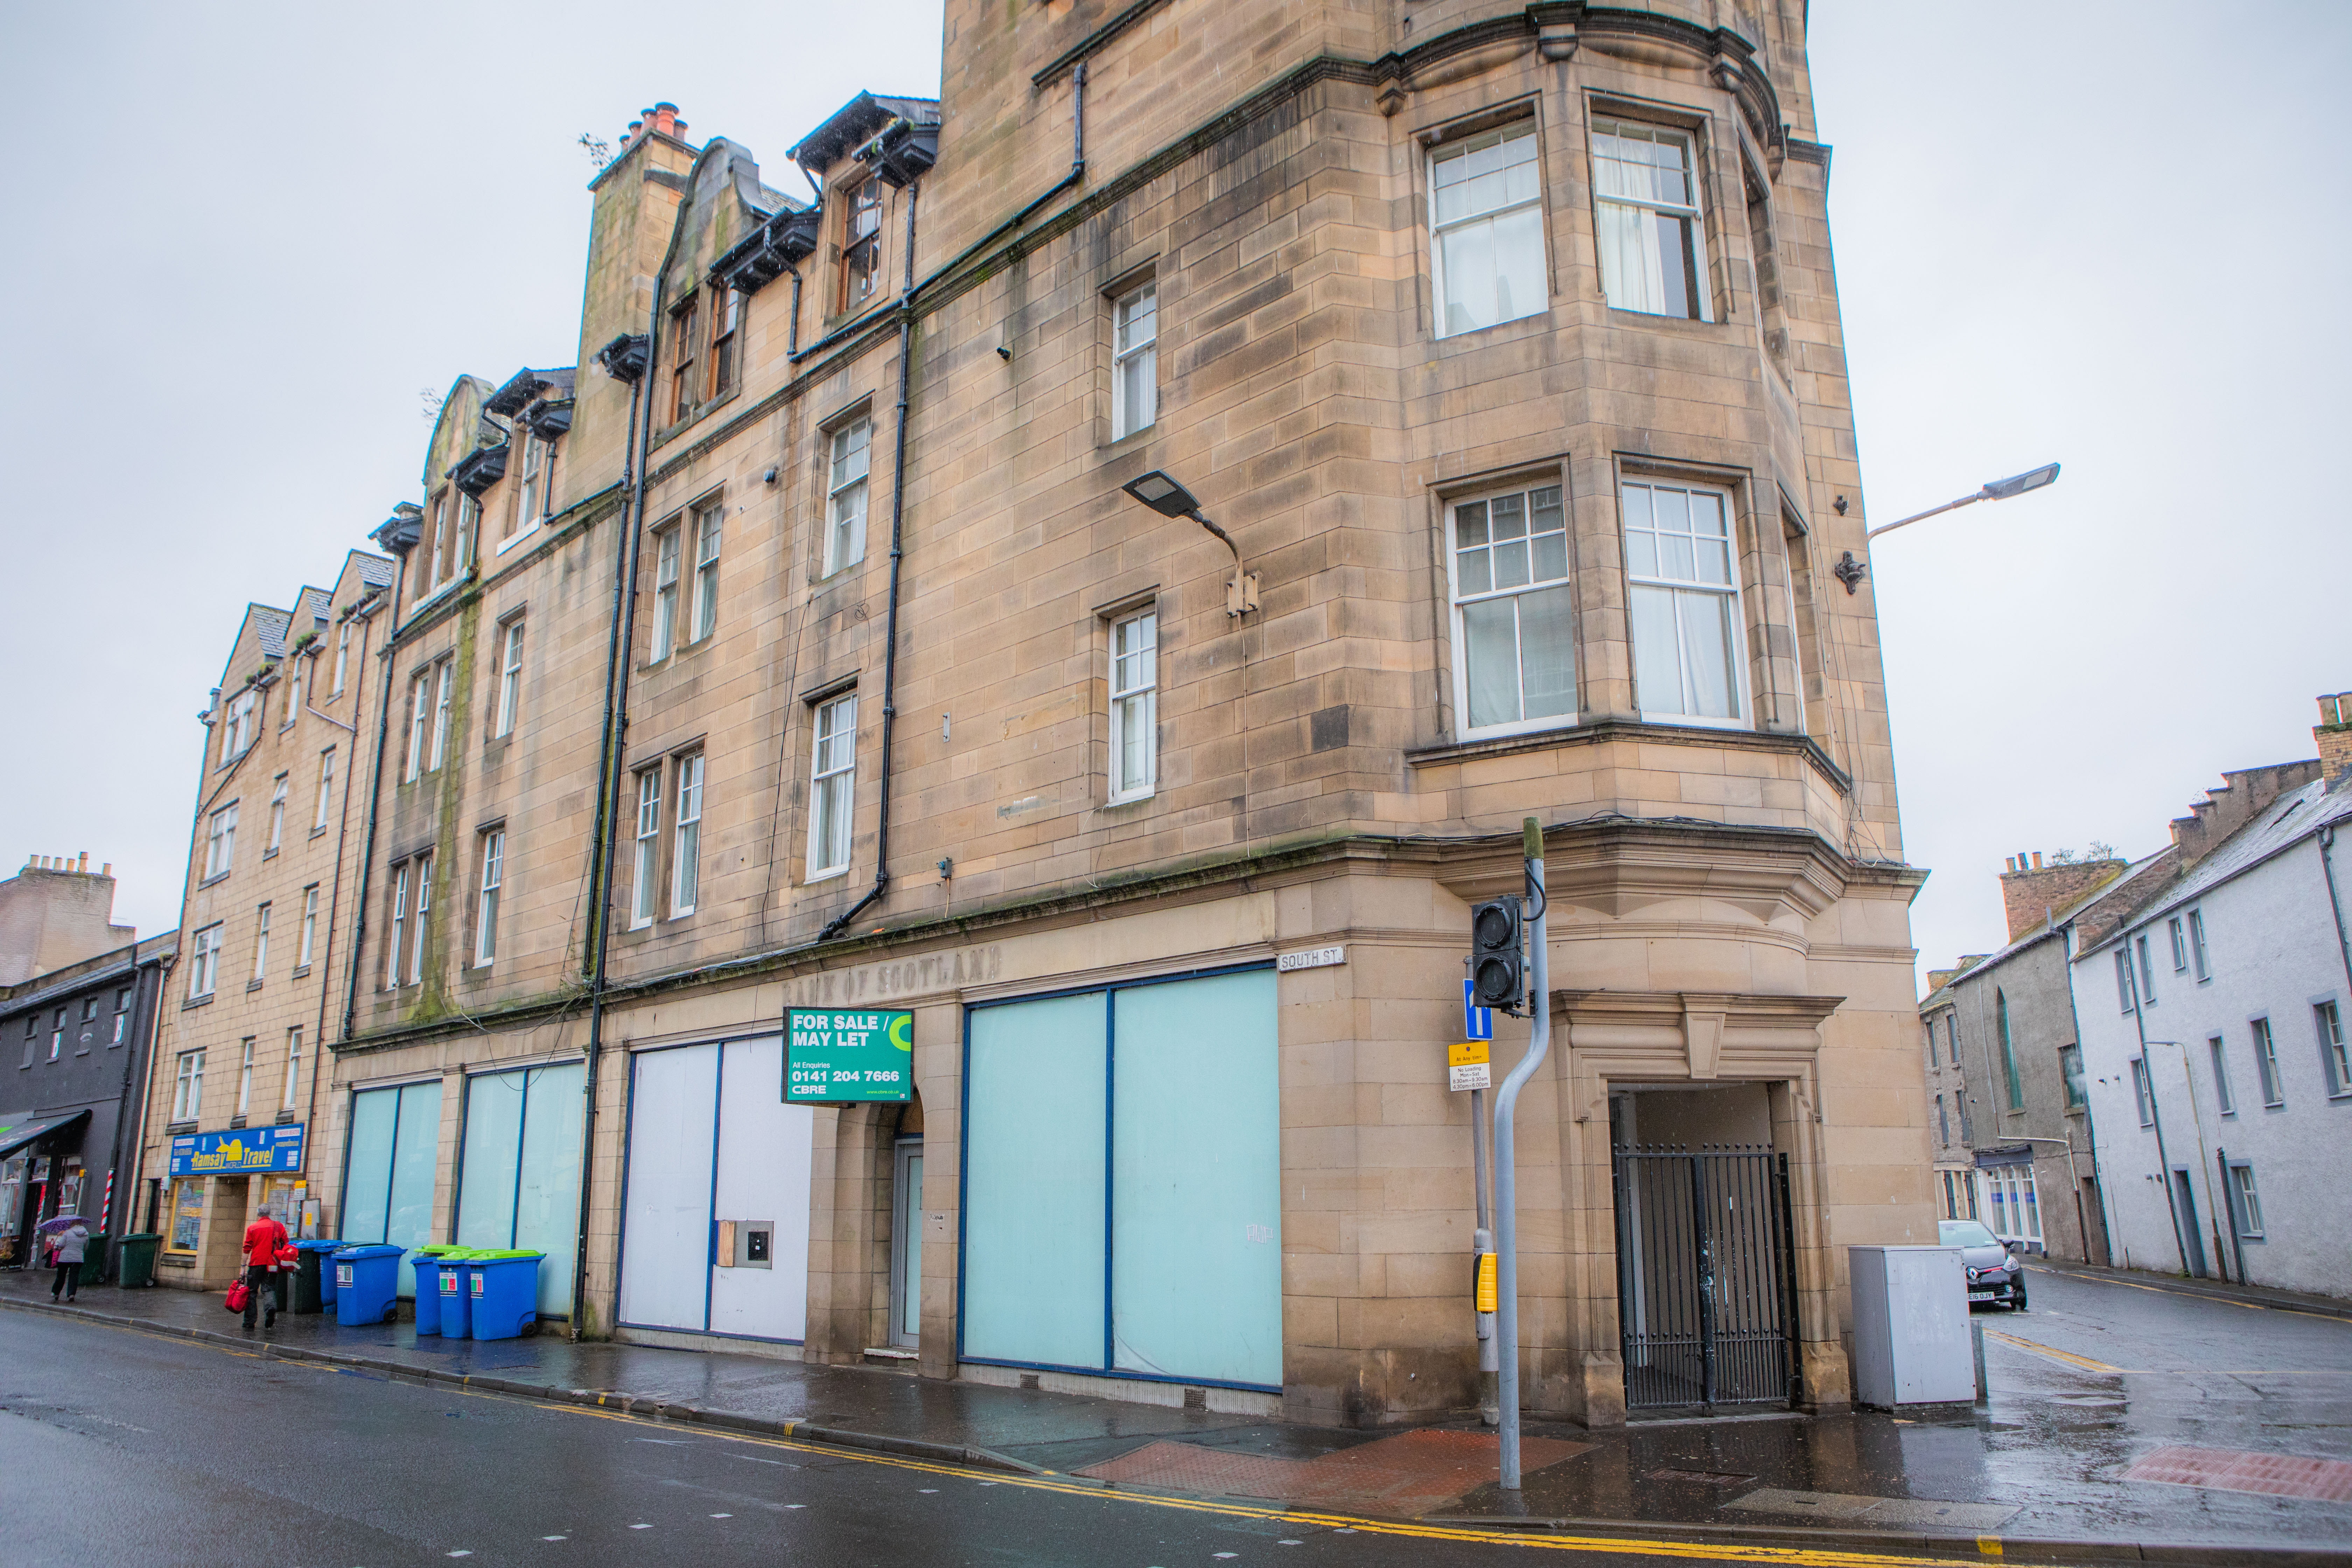 The derelict former Bank of Scotland branch on South Street is set to open as a golf simulation lounge.